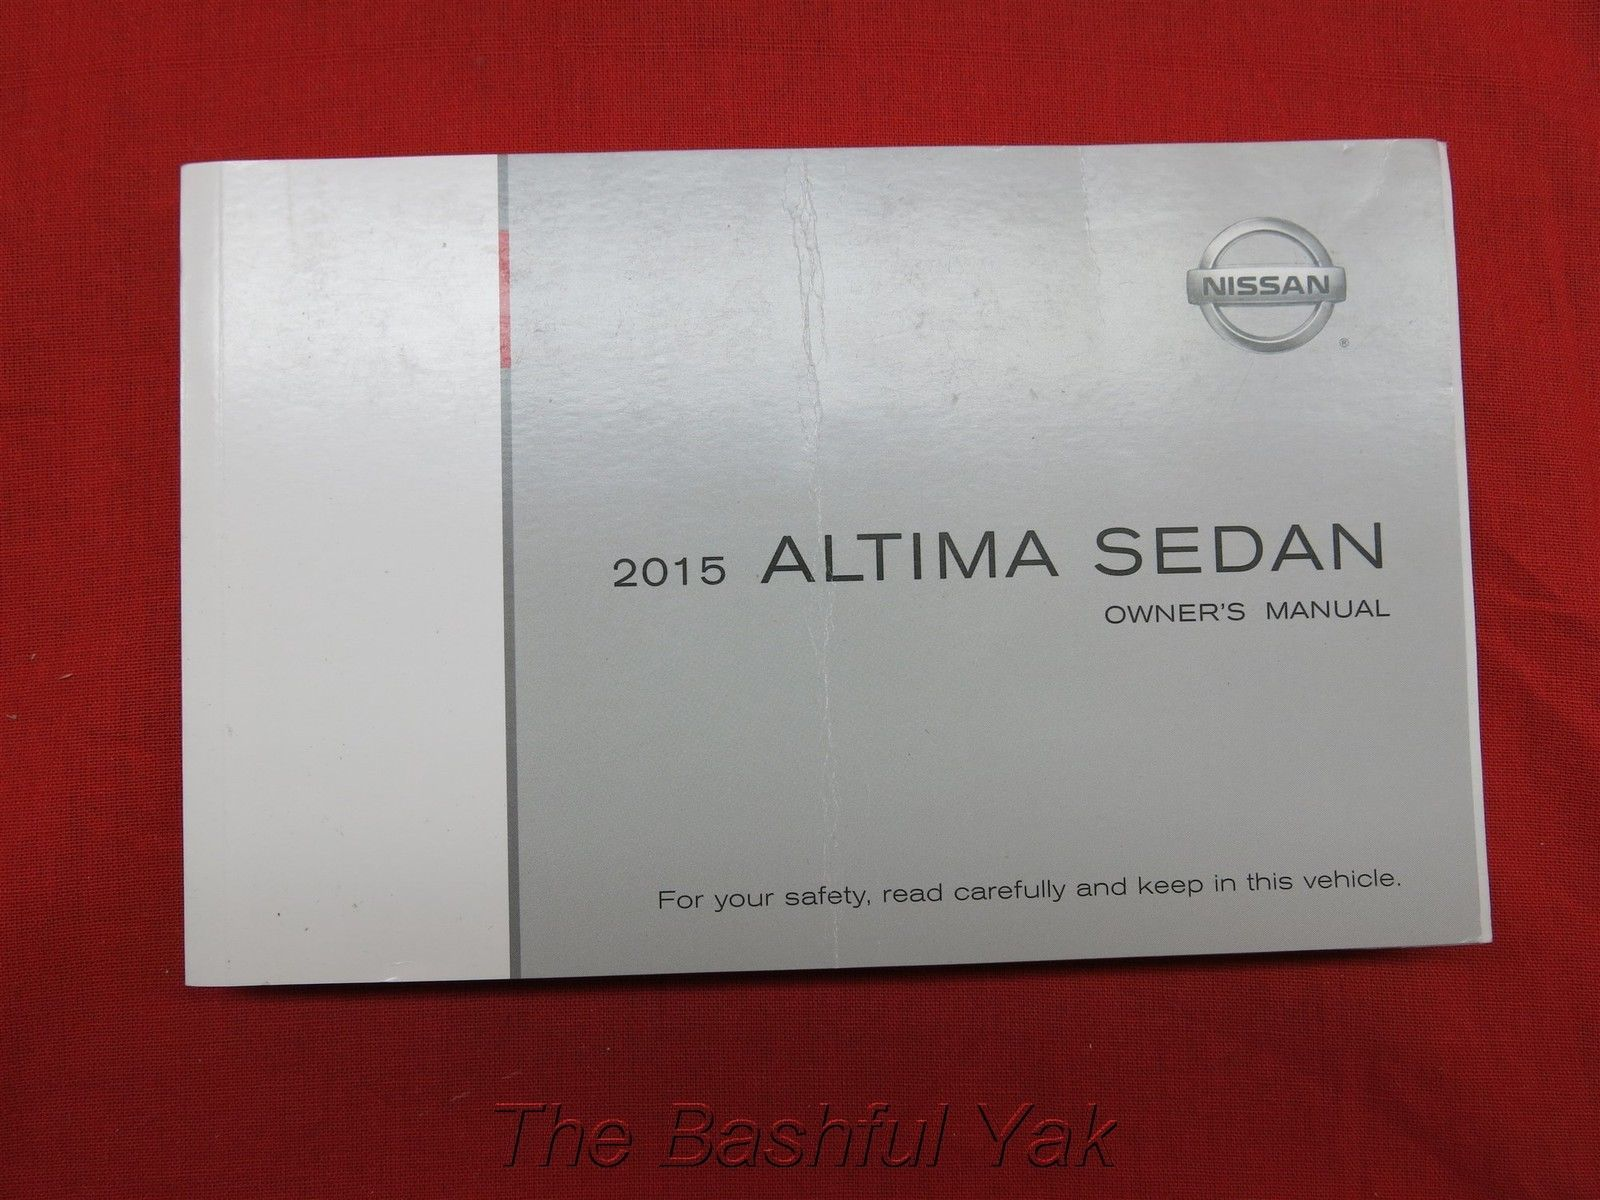 2015 nissan altima sedan owners manual guide book ebay 2003 Nissan Maxima Owners Manuals Nissan Owners Manual PDF